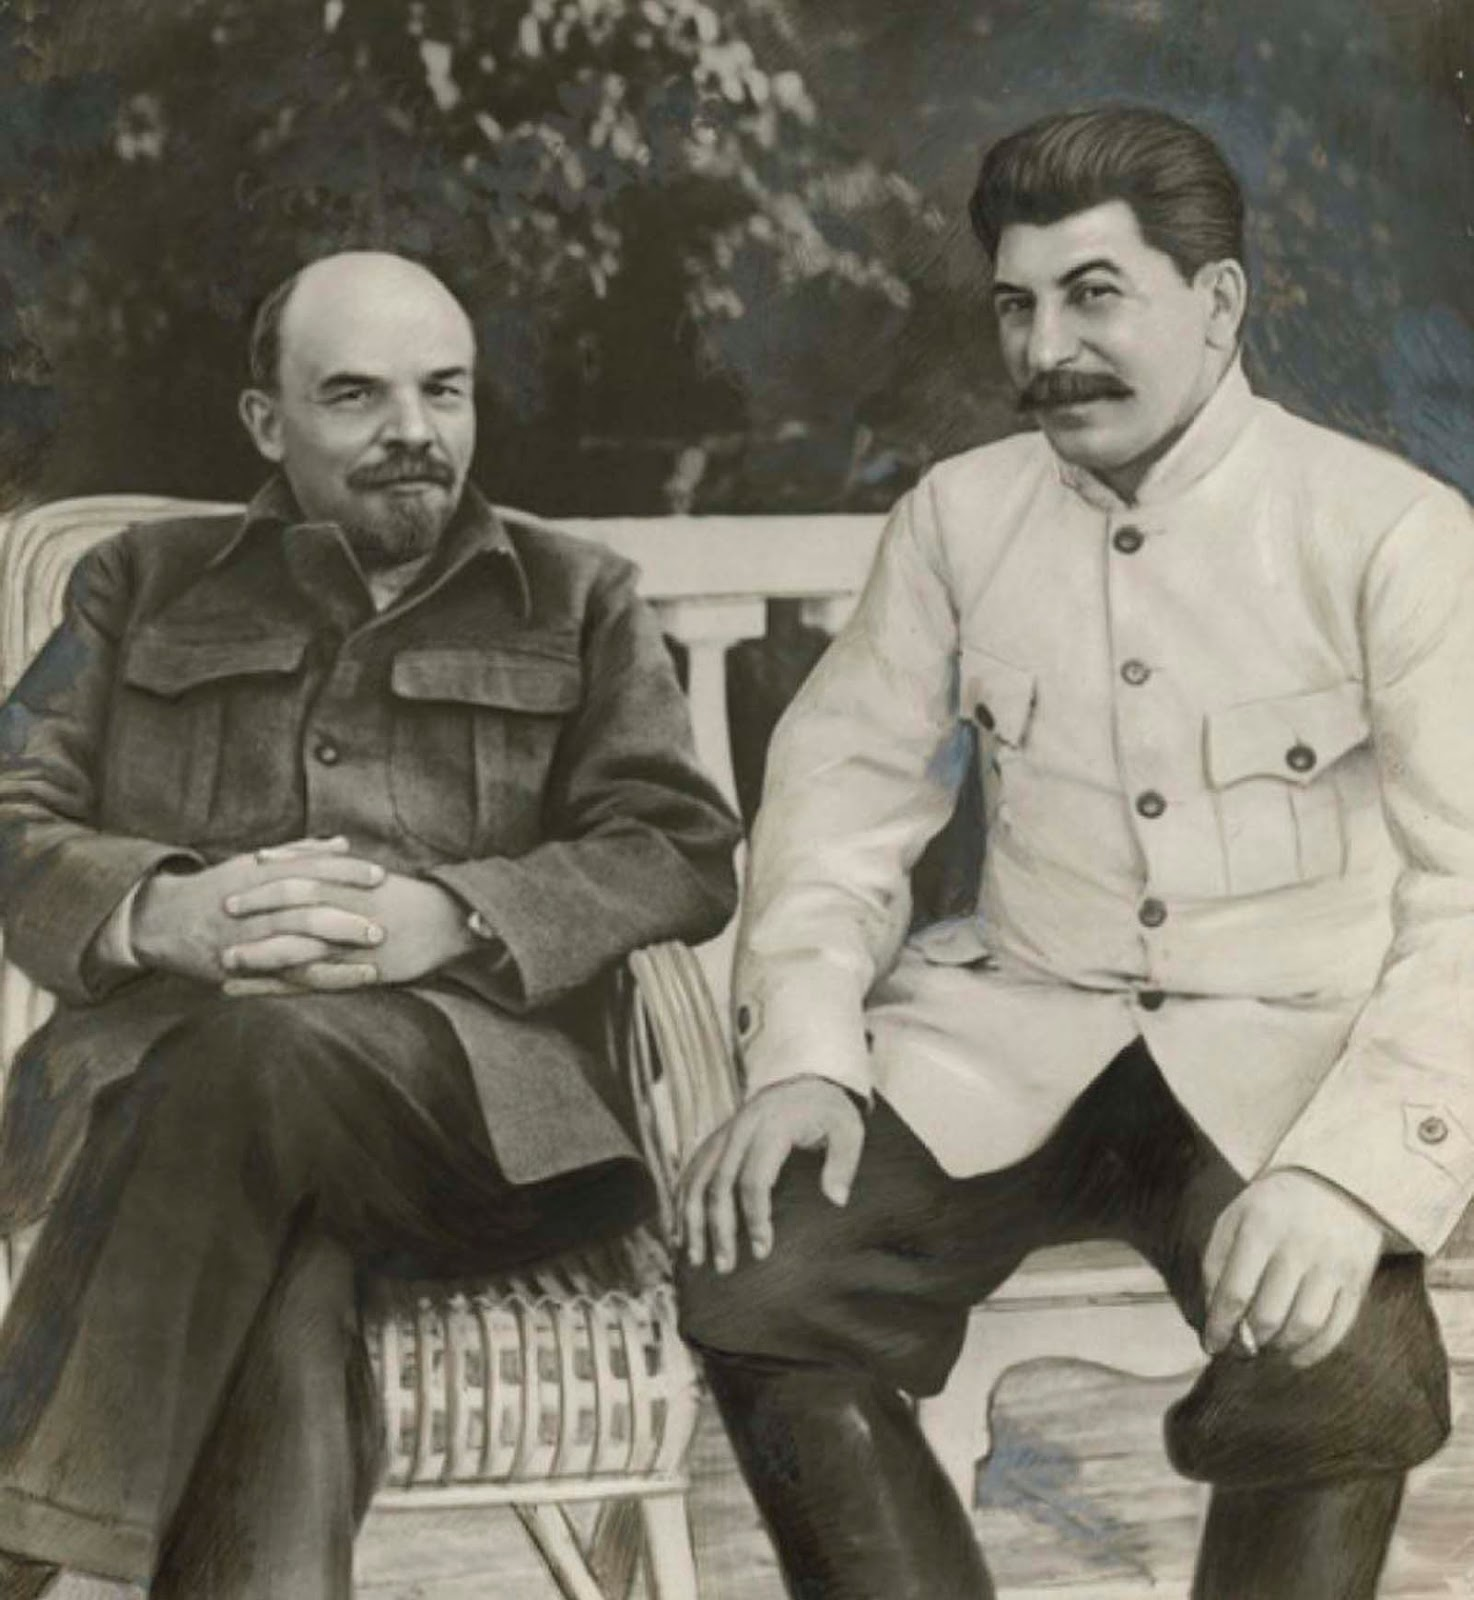 'Lenin and Stalin in Gorki in 1922,